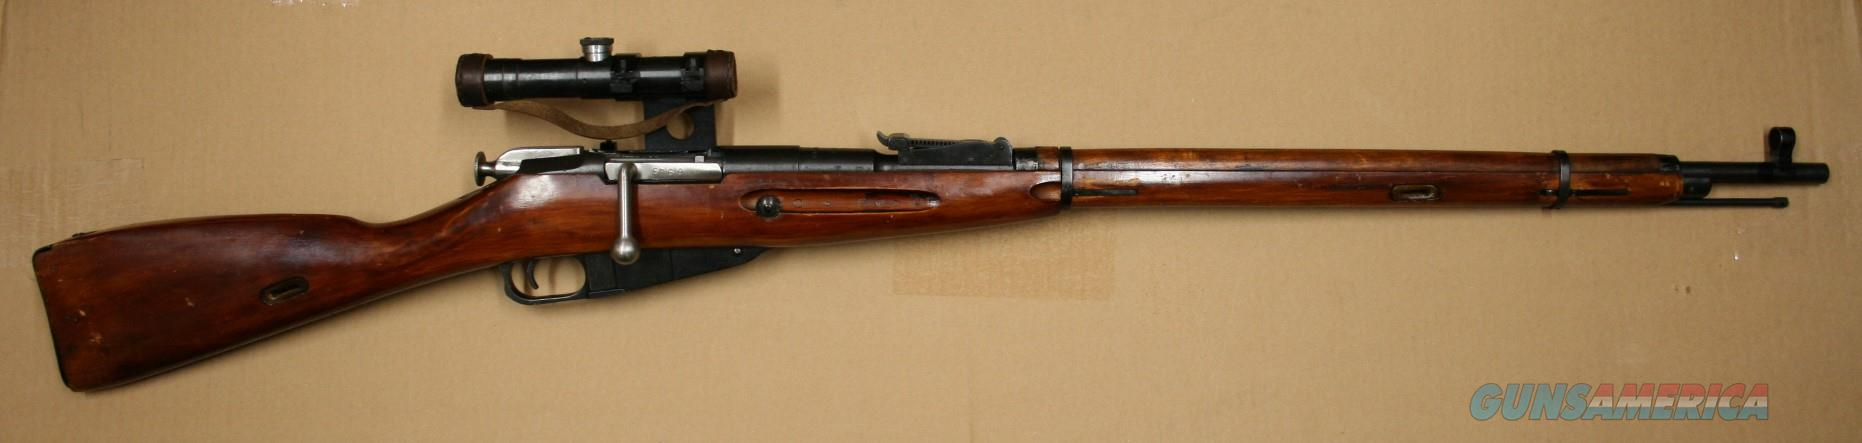 Russian Izhevskt M91/30 PU 7.62x54R Sniper Rifle  Guns > Rifles > Mosin-Nagant Rifles/Carbines